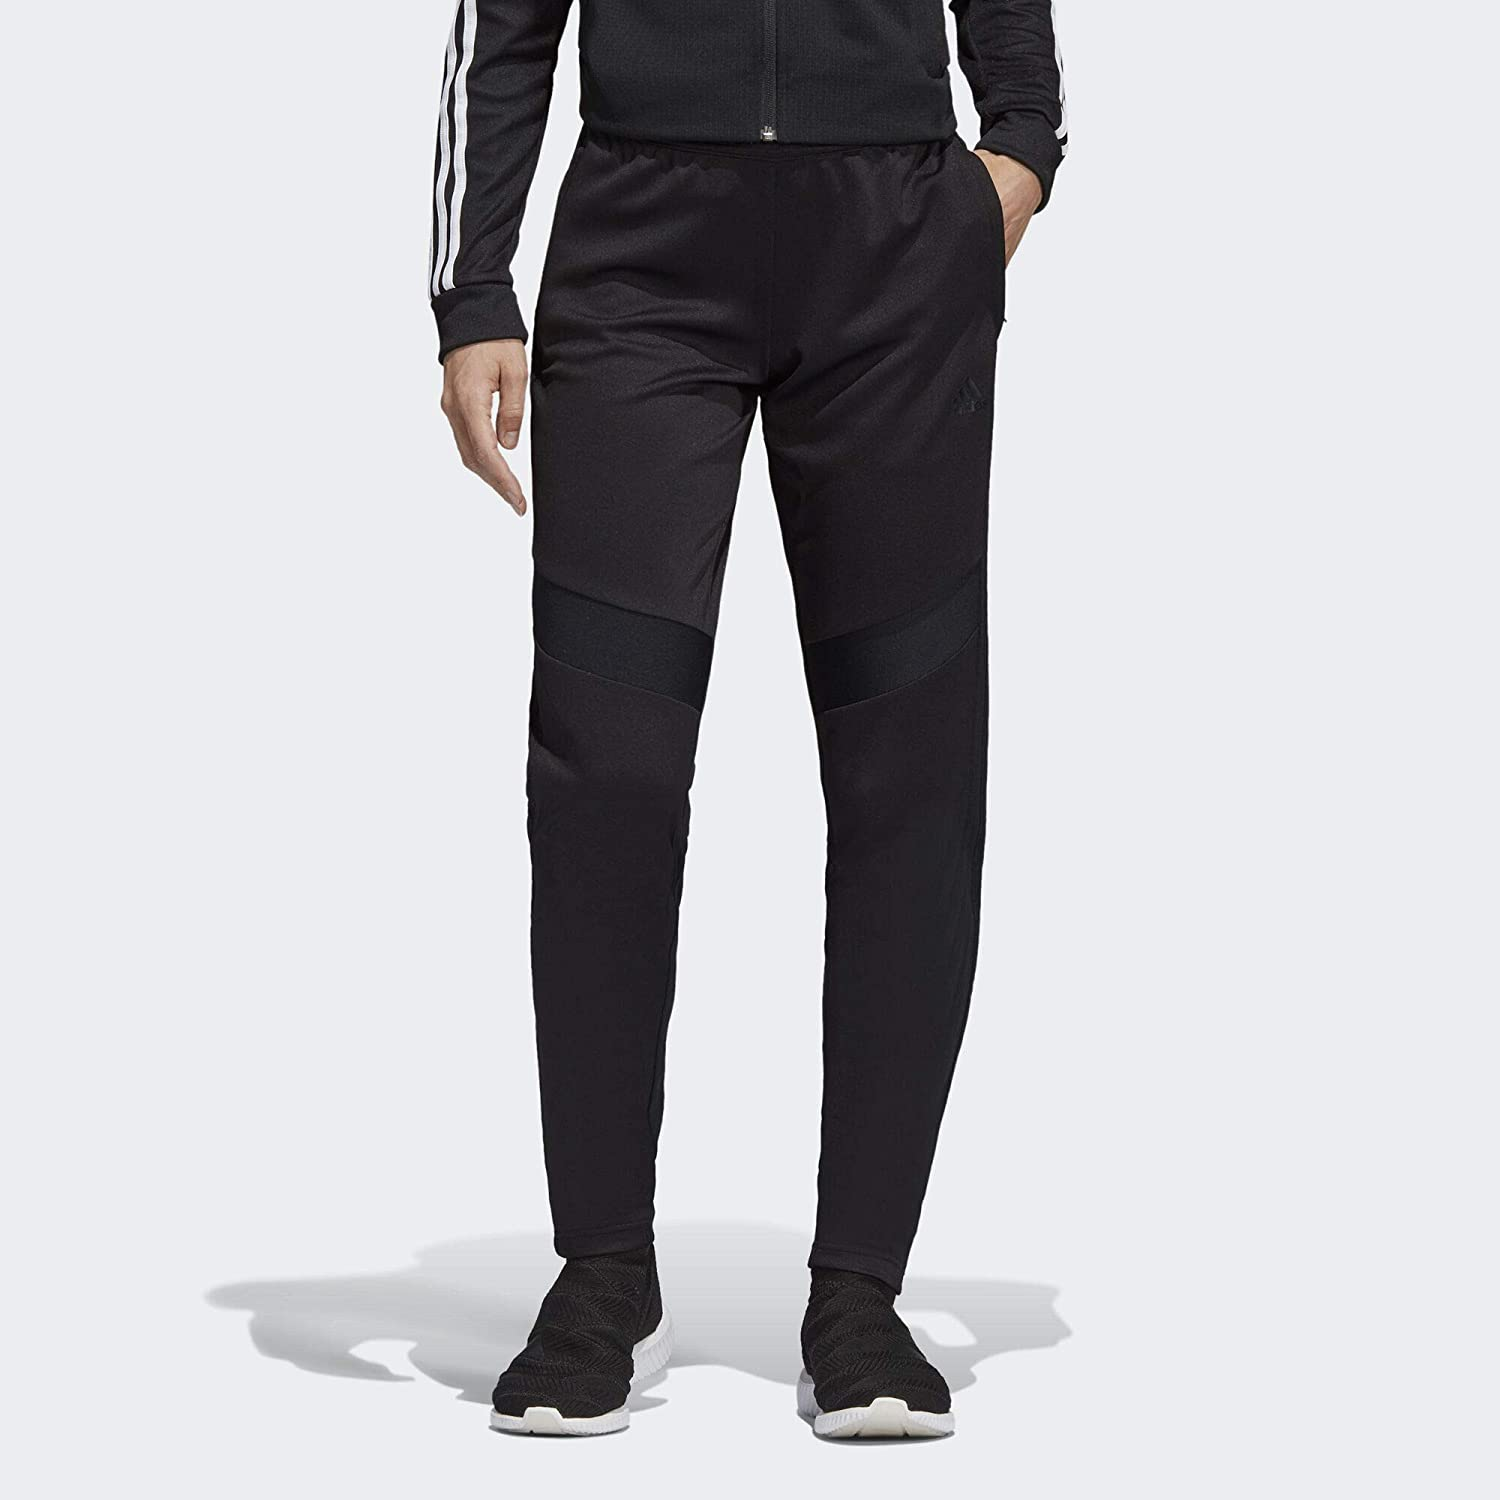 c801305e8 Amazon.com: adidas Tiro 19 Training Pants Women's: Clothing